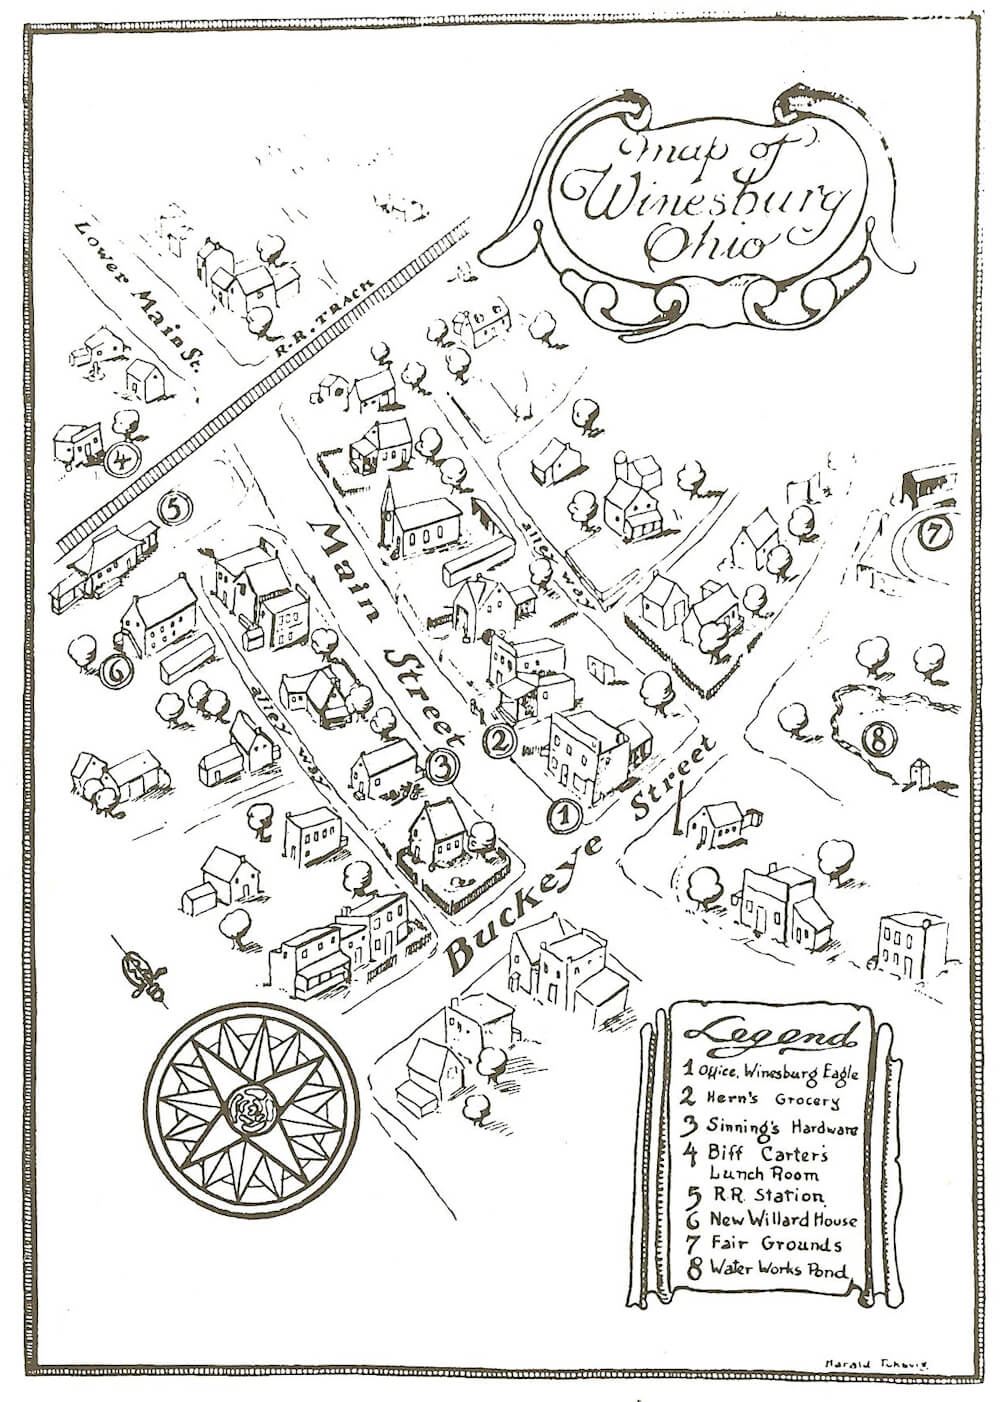 Map of the town Winesburg, Ohio from the first edition of Sherwood Anderson's book of the same name.